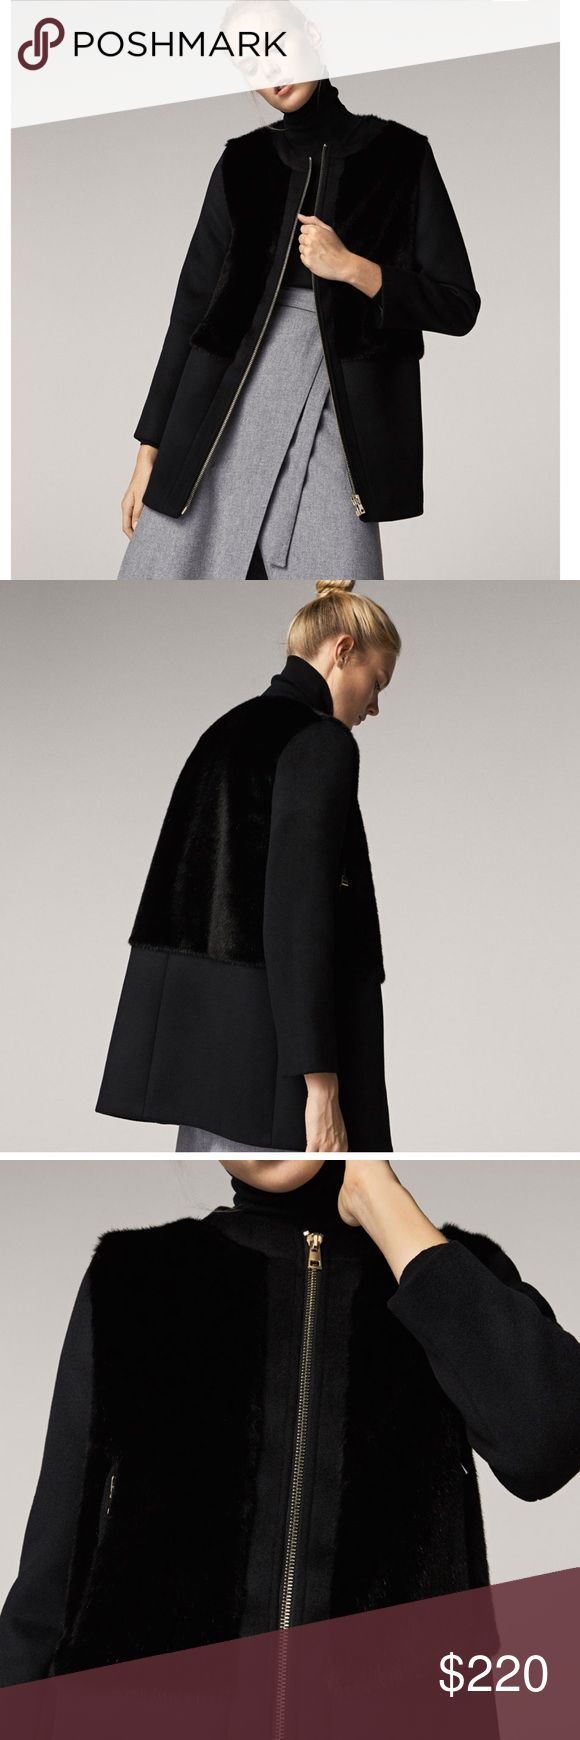 Massimo Dutti Black Wool/Fur Contrast Coat  36 NWT I bought this beautiful coat from Massimo Dutti but lost the receipt and they wouldn't give me store credit 🤦🏽‍♀️  Bought it for 325$ but selling for less and cutting my losses. Massimo Dutti Jackets & Coats